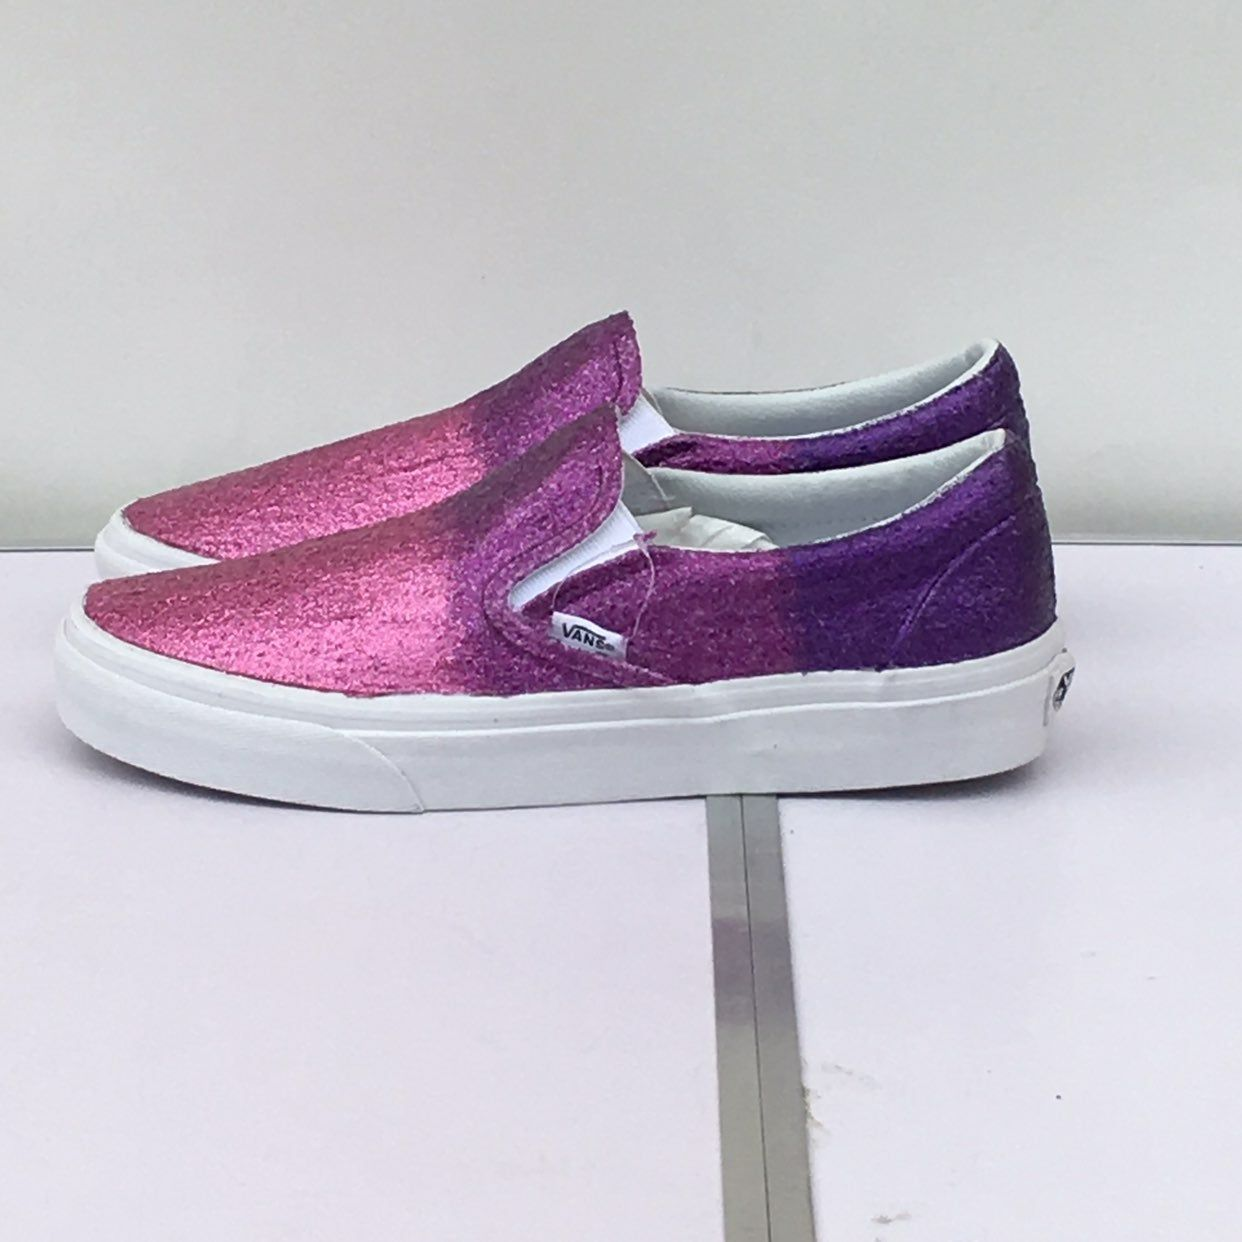 Custom Glitter Vans These shoes have